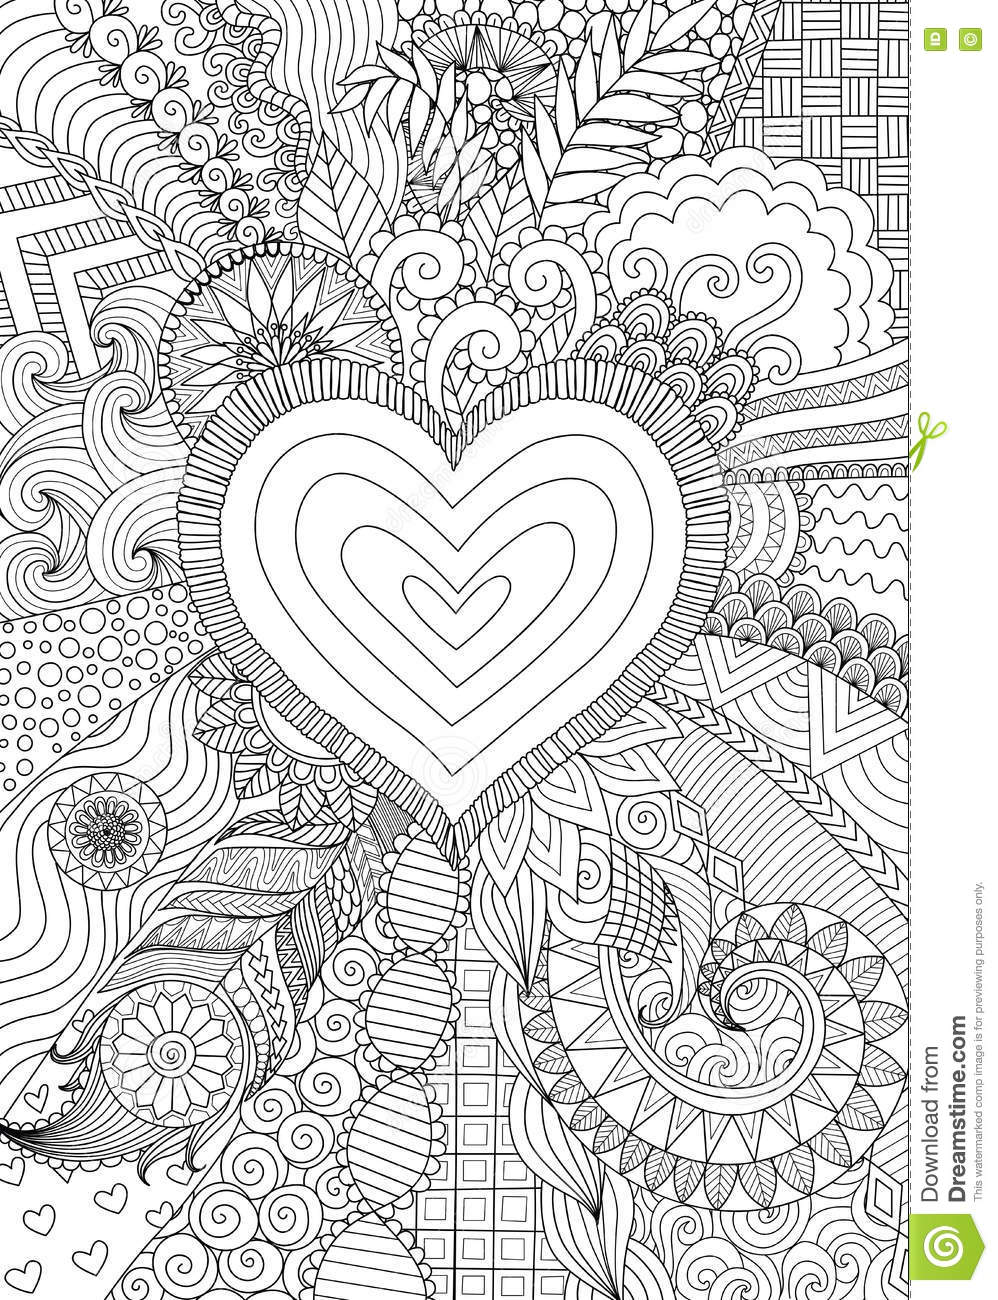 Wedding Card Line Art Designs : Zendoodle design of heart shape on abstract line art